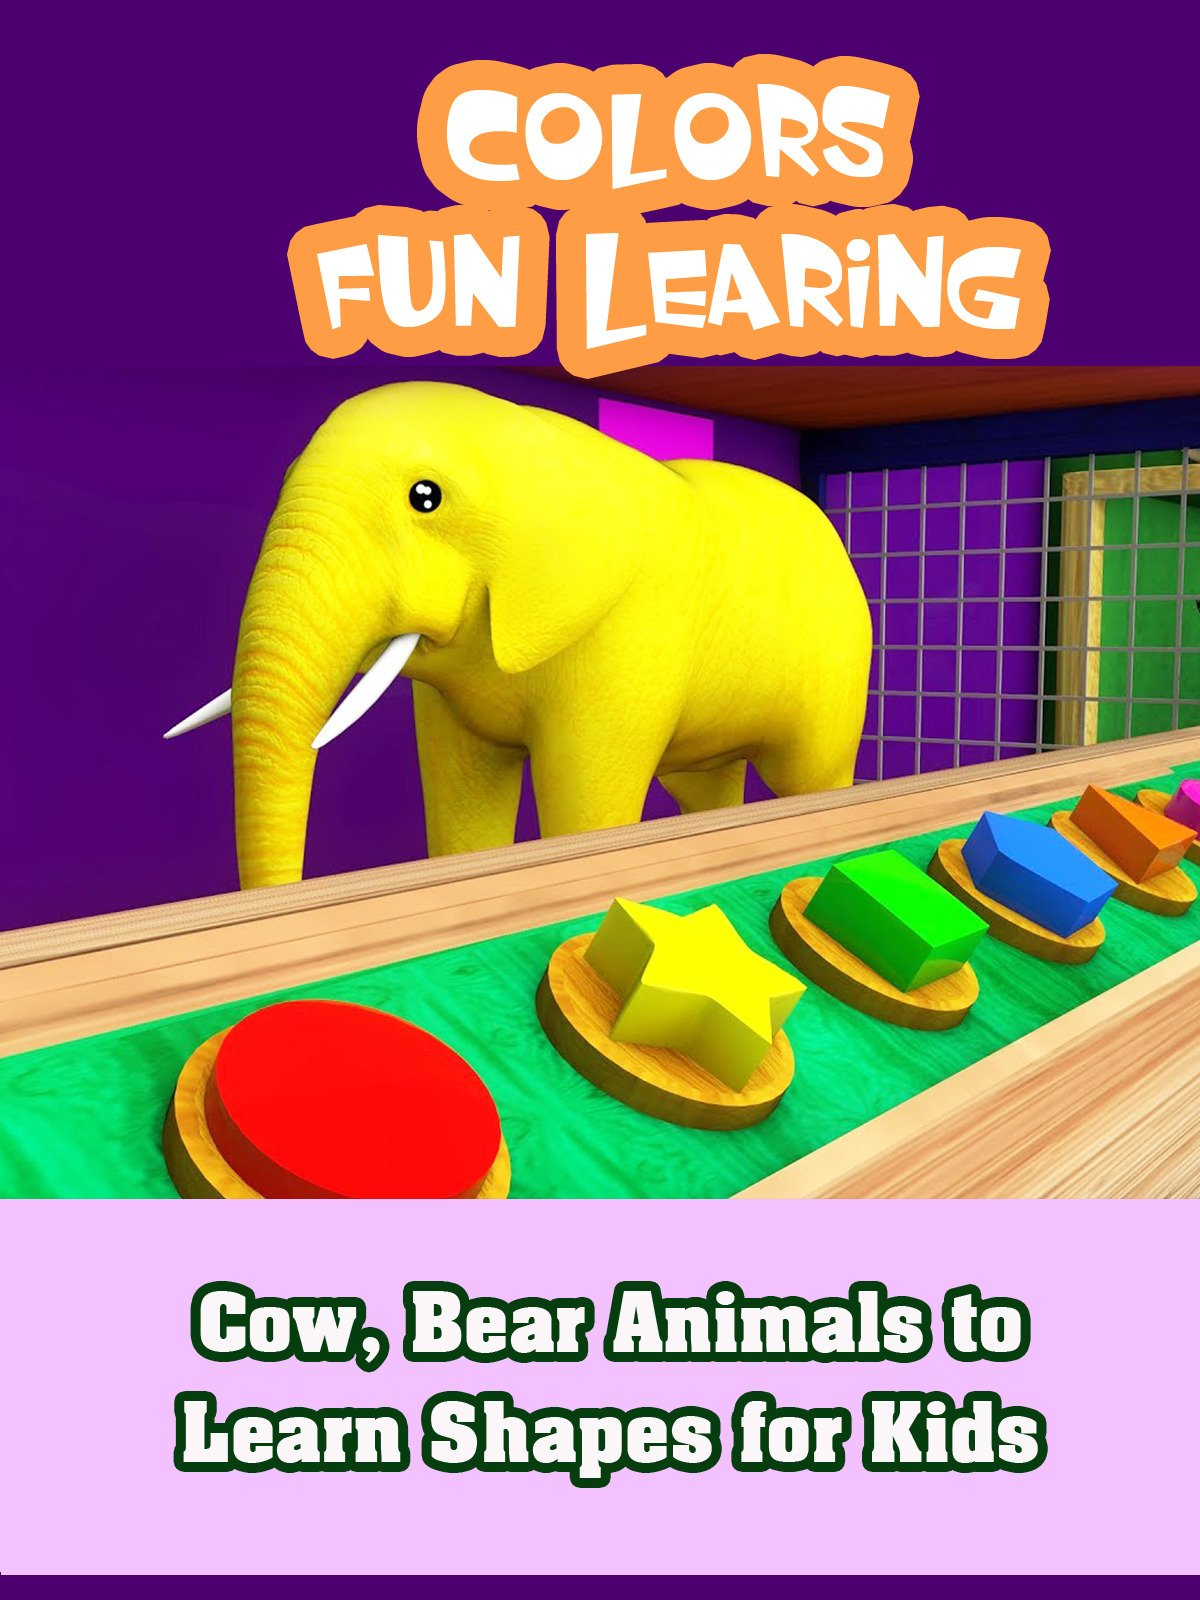 Cow, Bear Animals to Learn Shapes for Kids